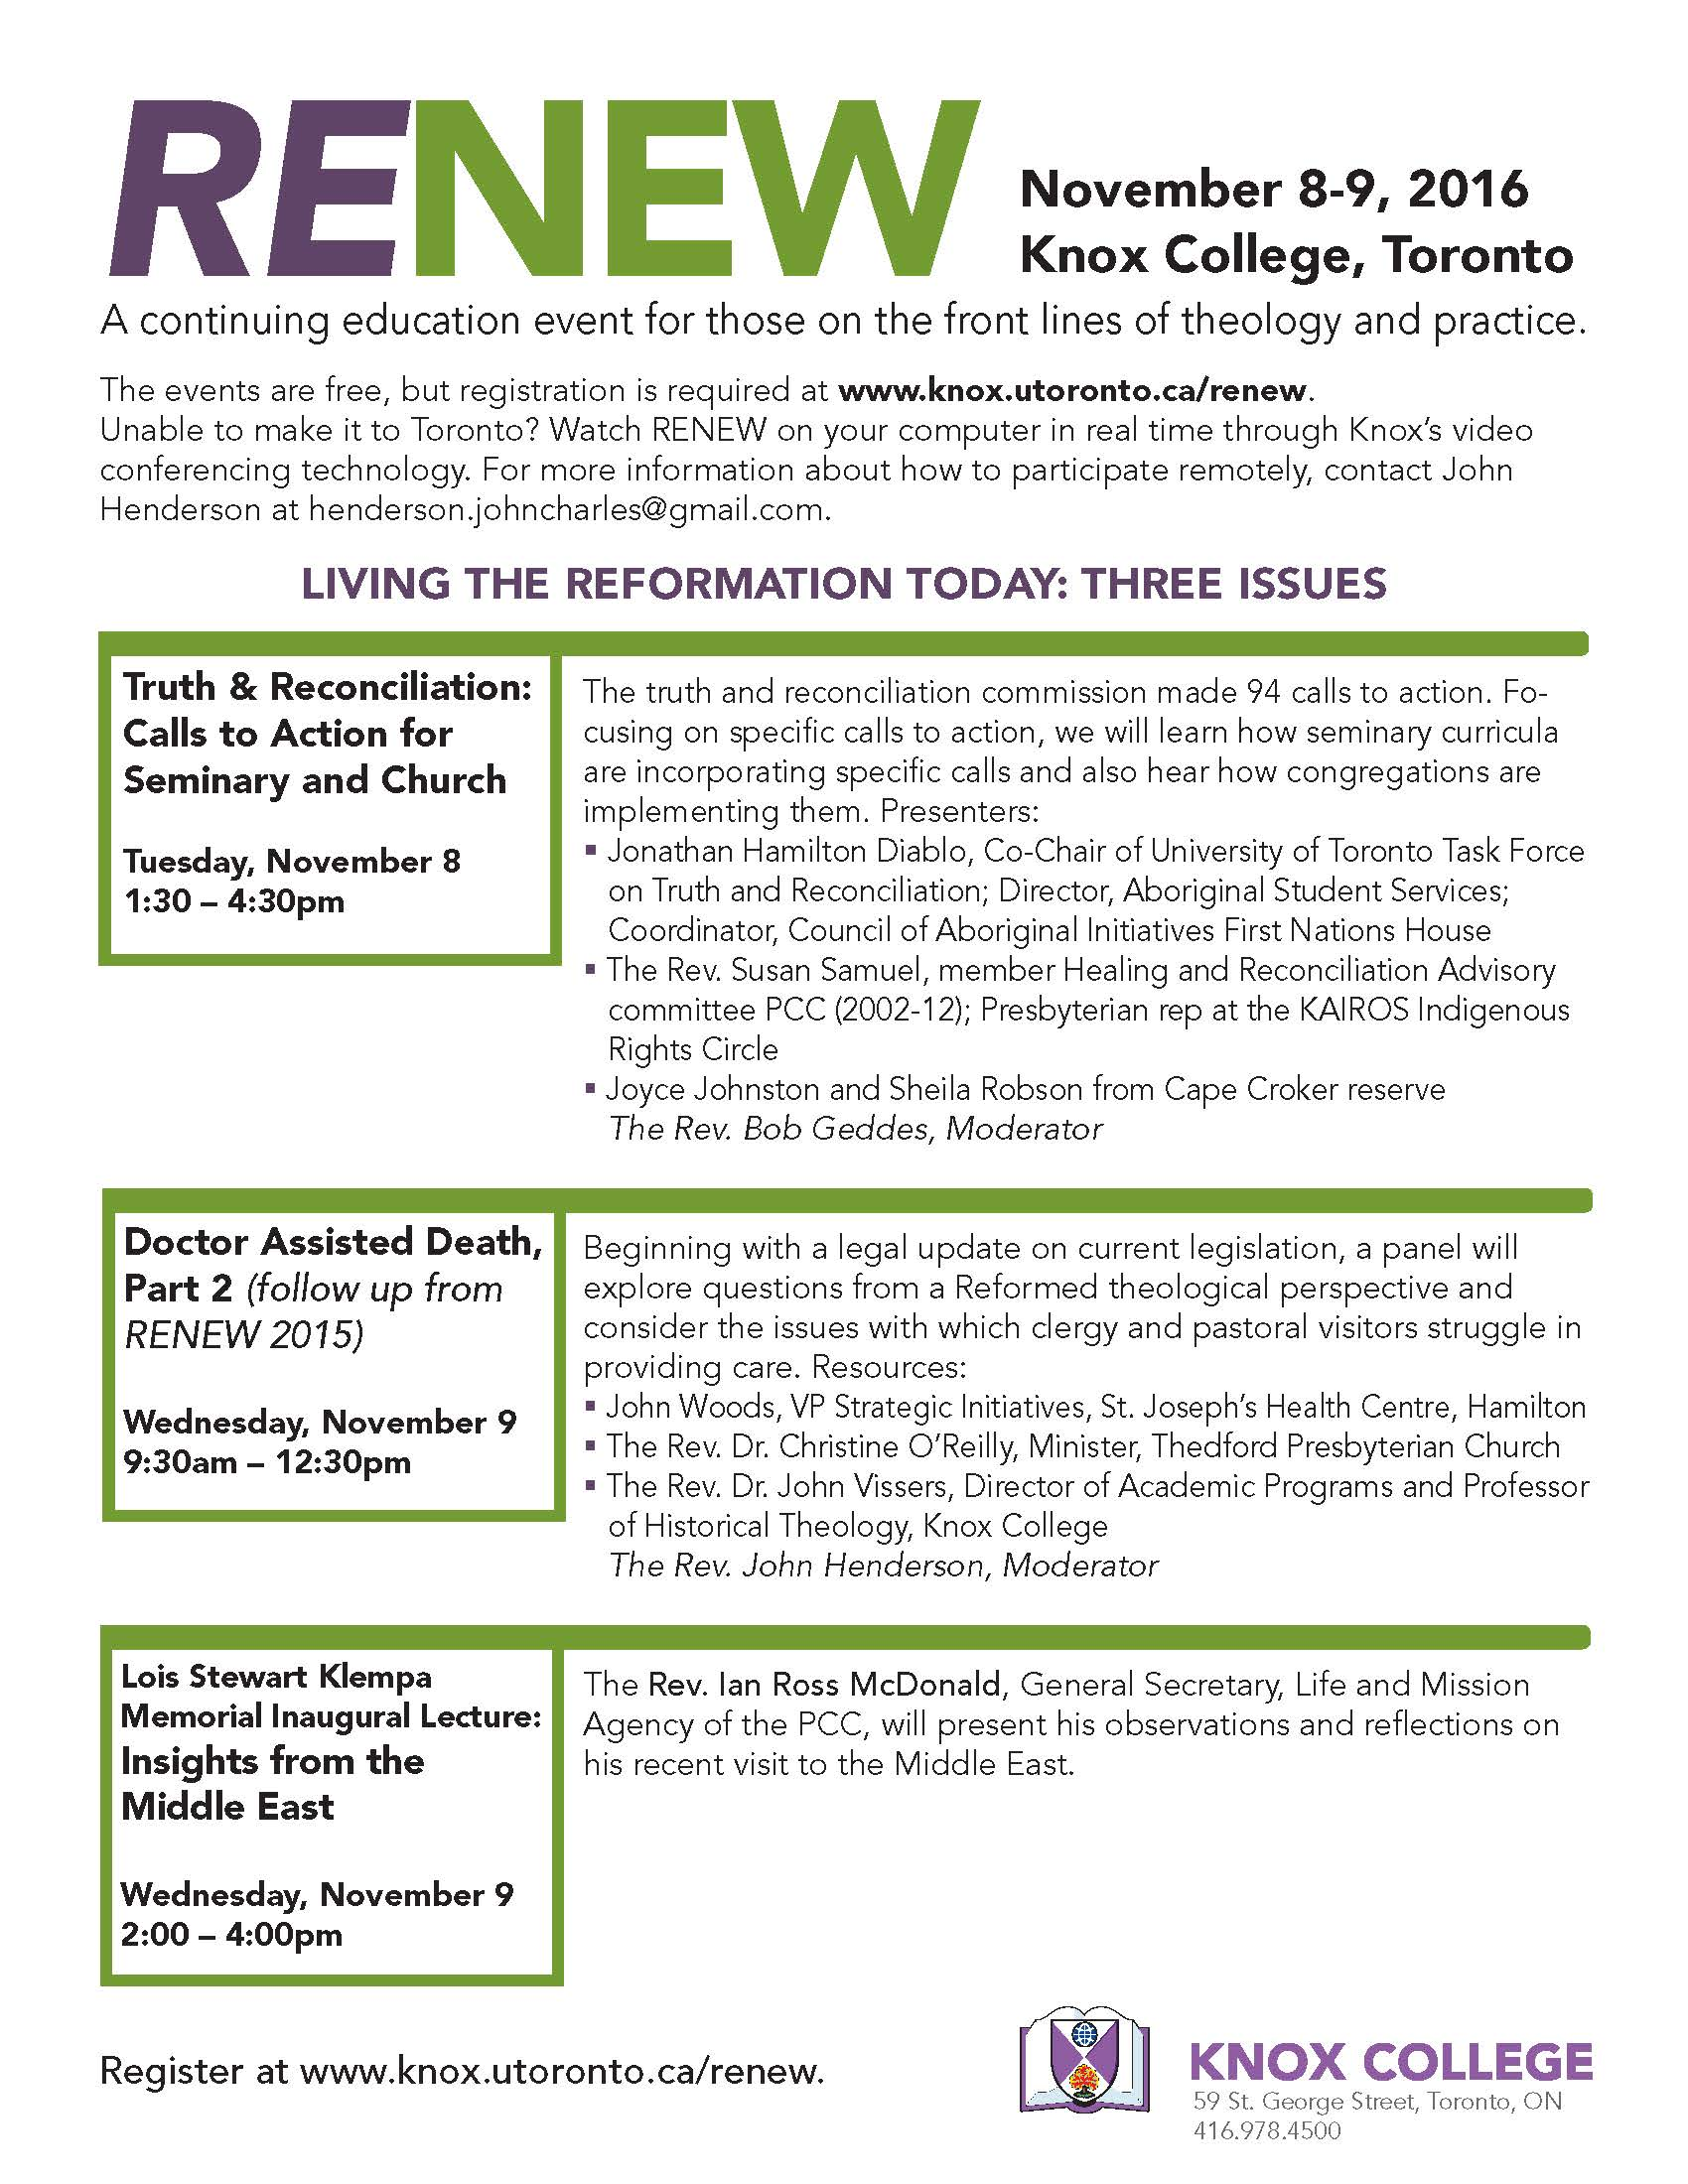 Knox College - RENEW Continuing Education Event